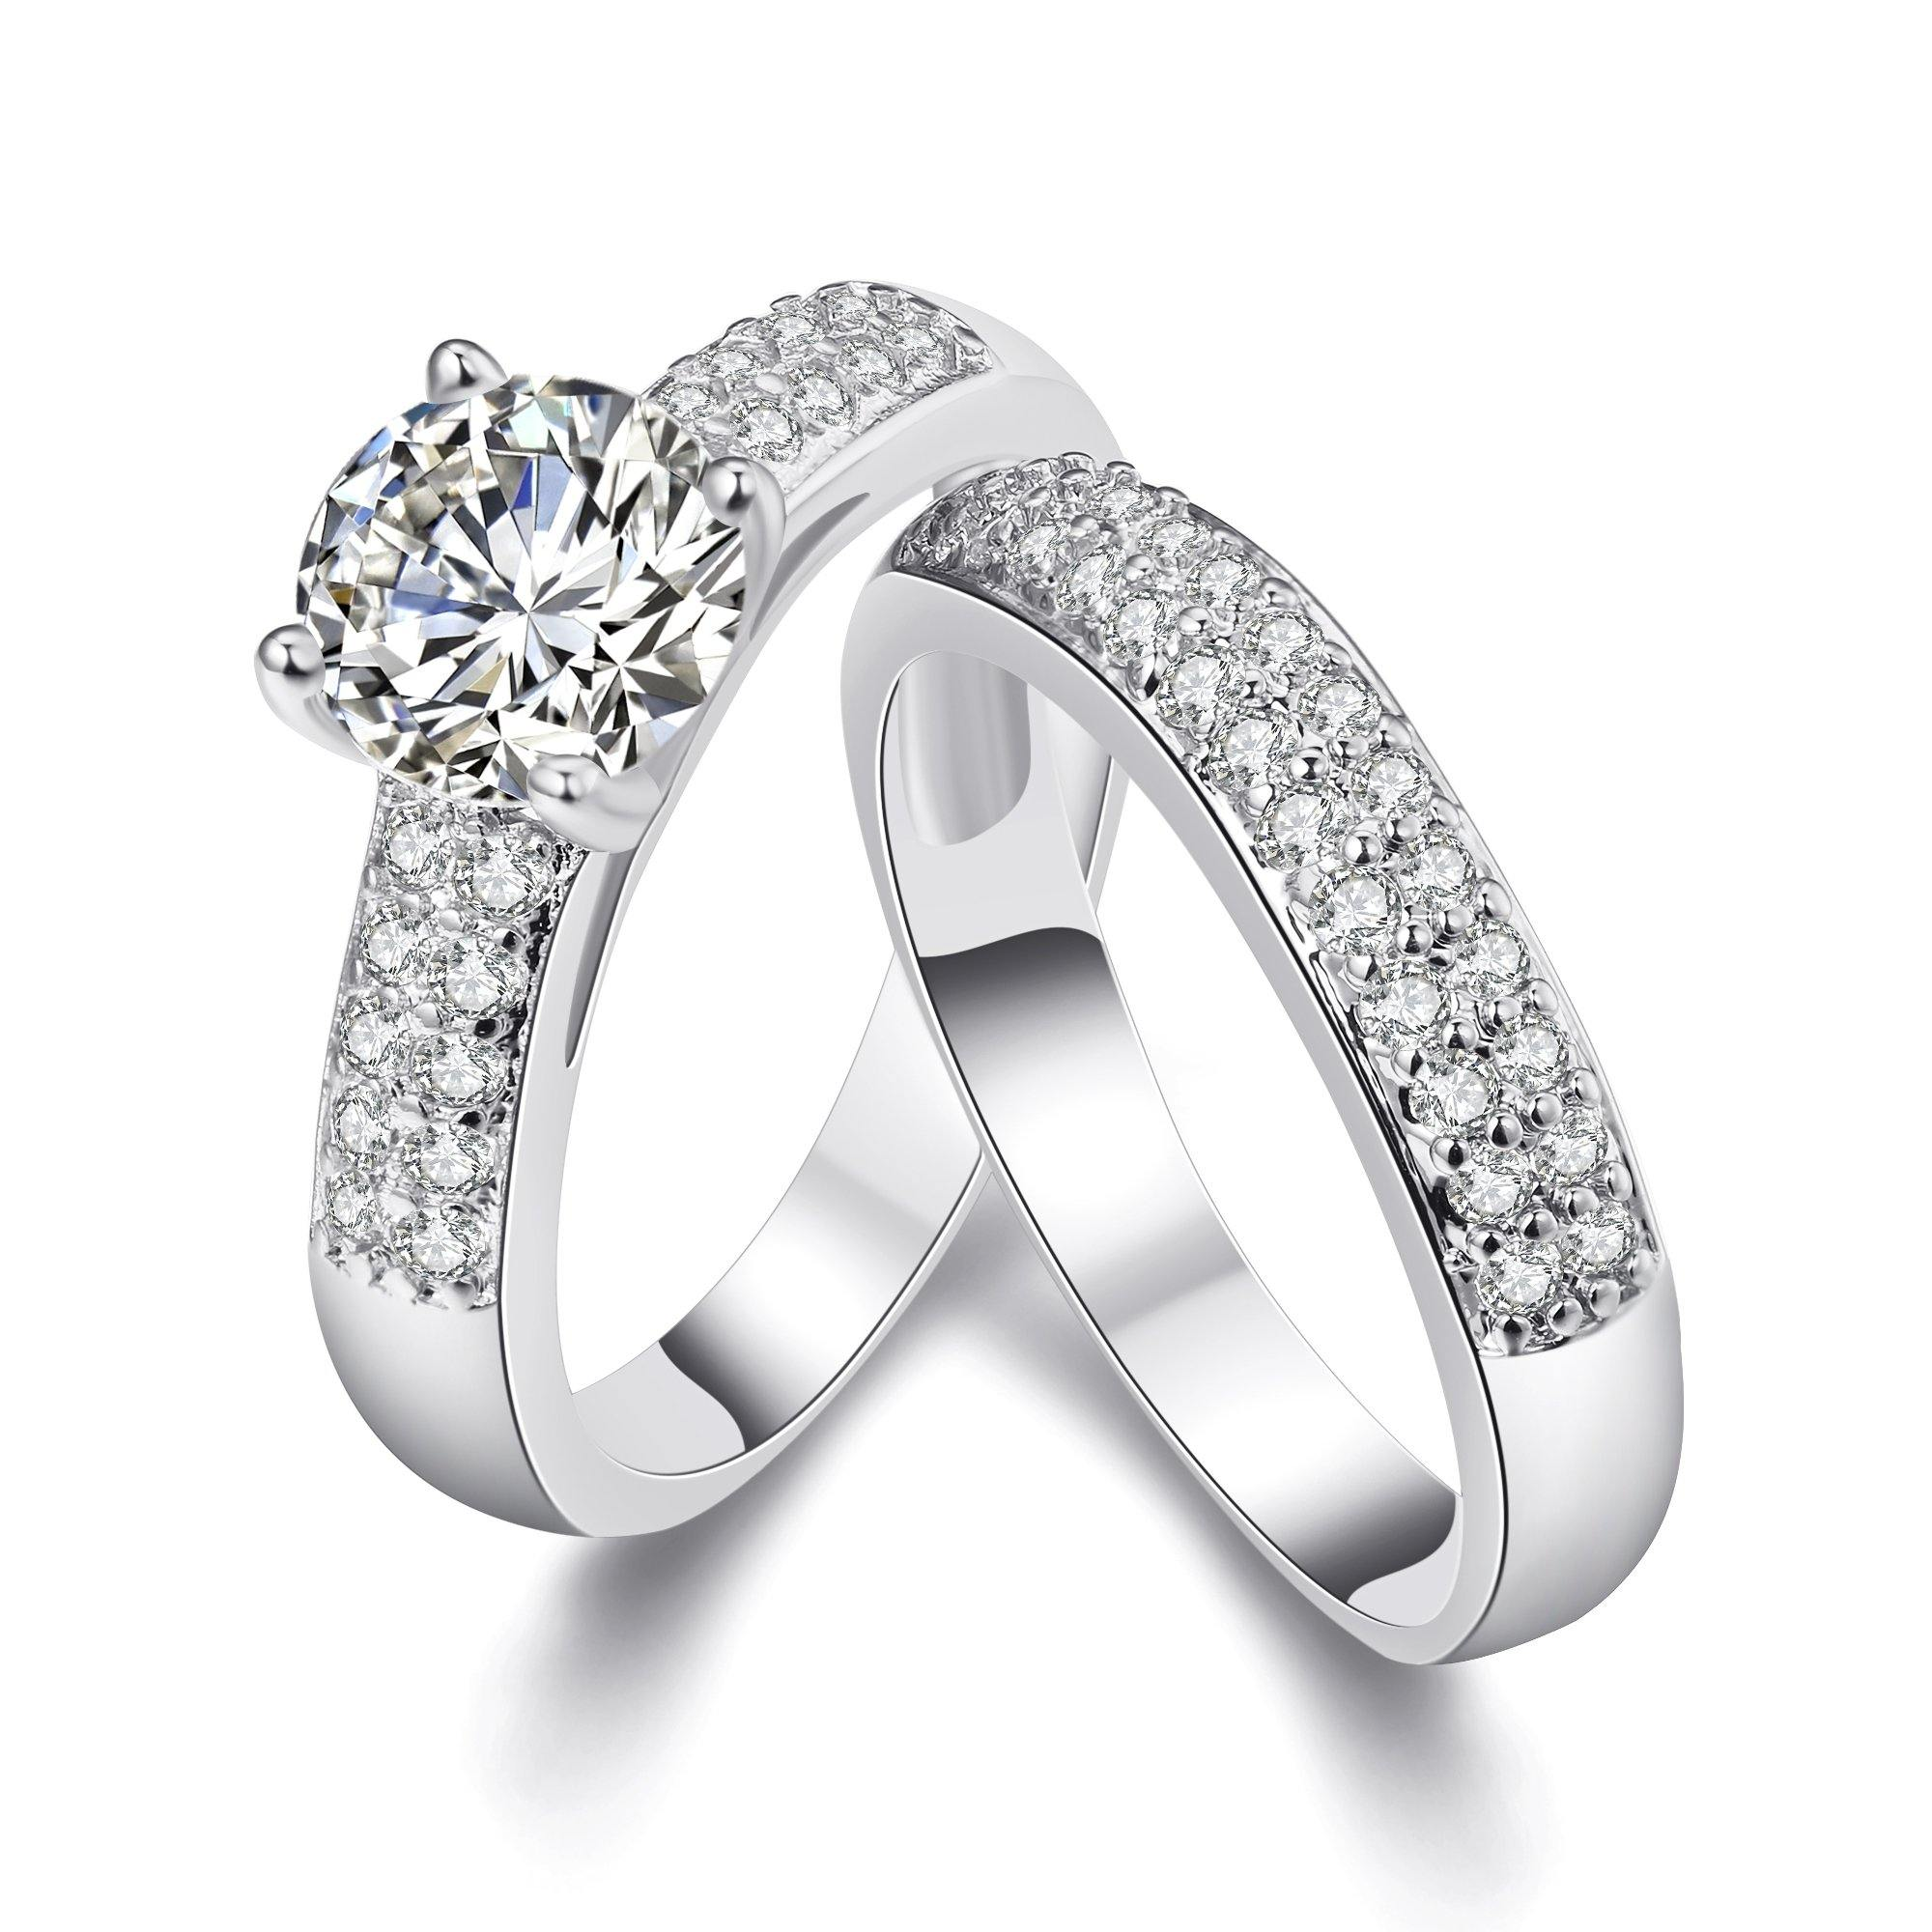 18K White Gold Plated Pave Band and Round Classic Crystal Ring Set